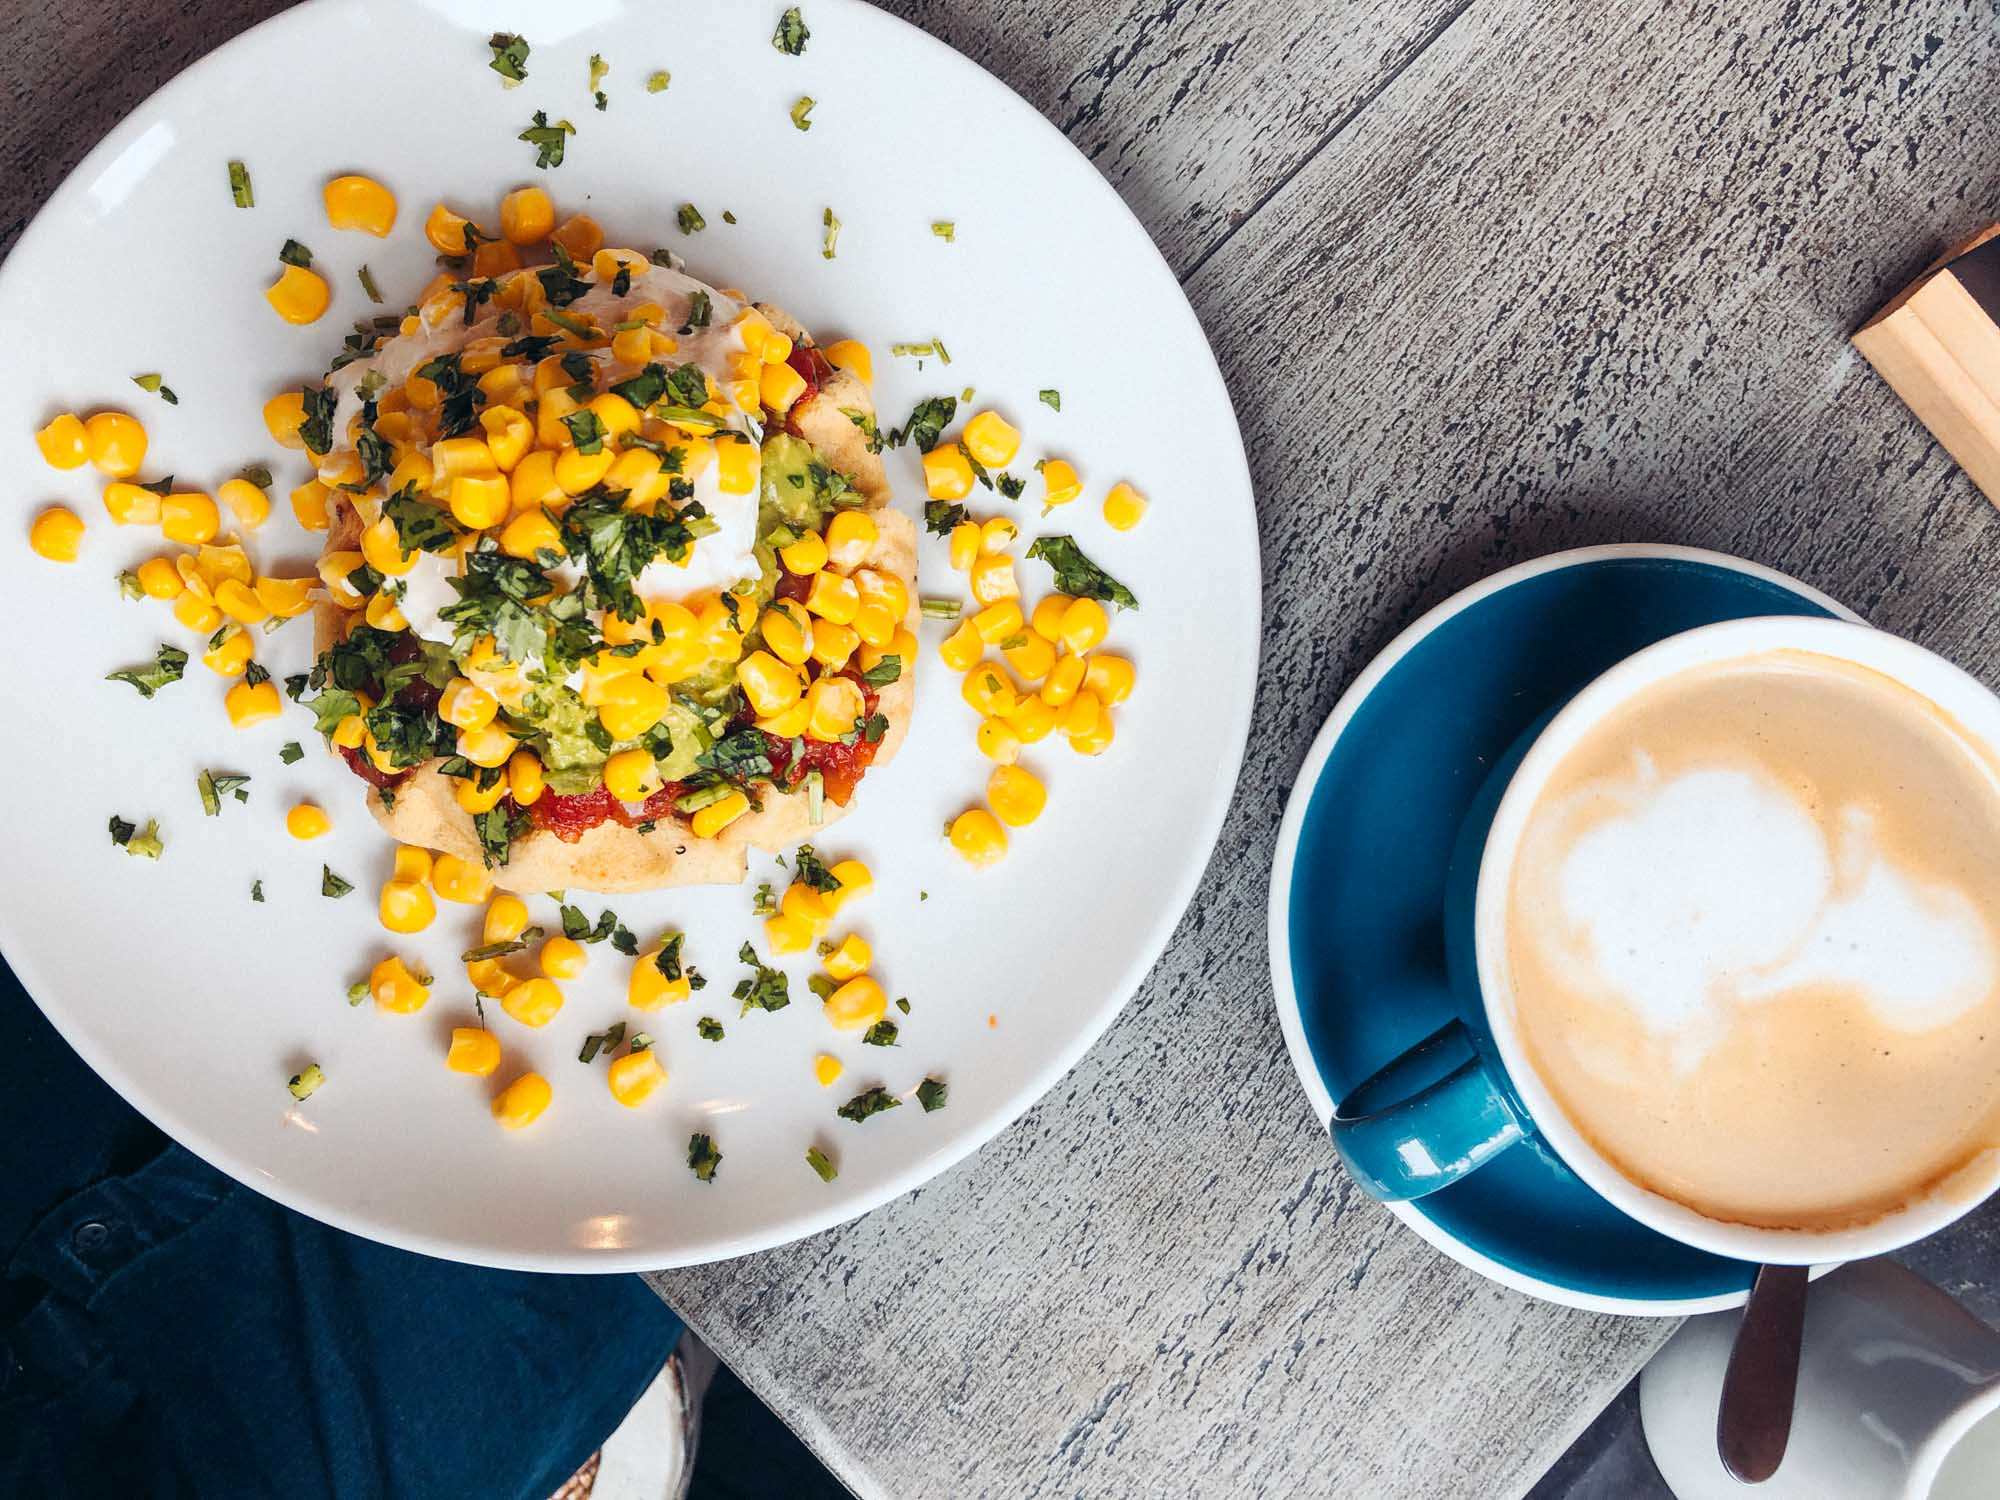 Best brunches in Bristol - East Village Cafe